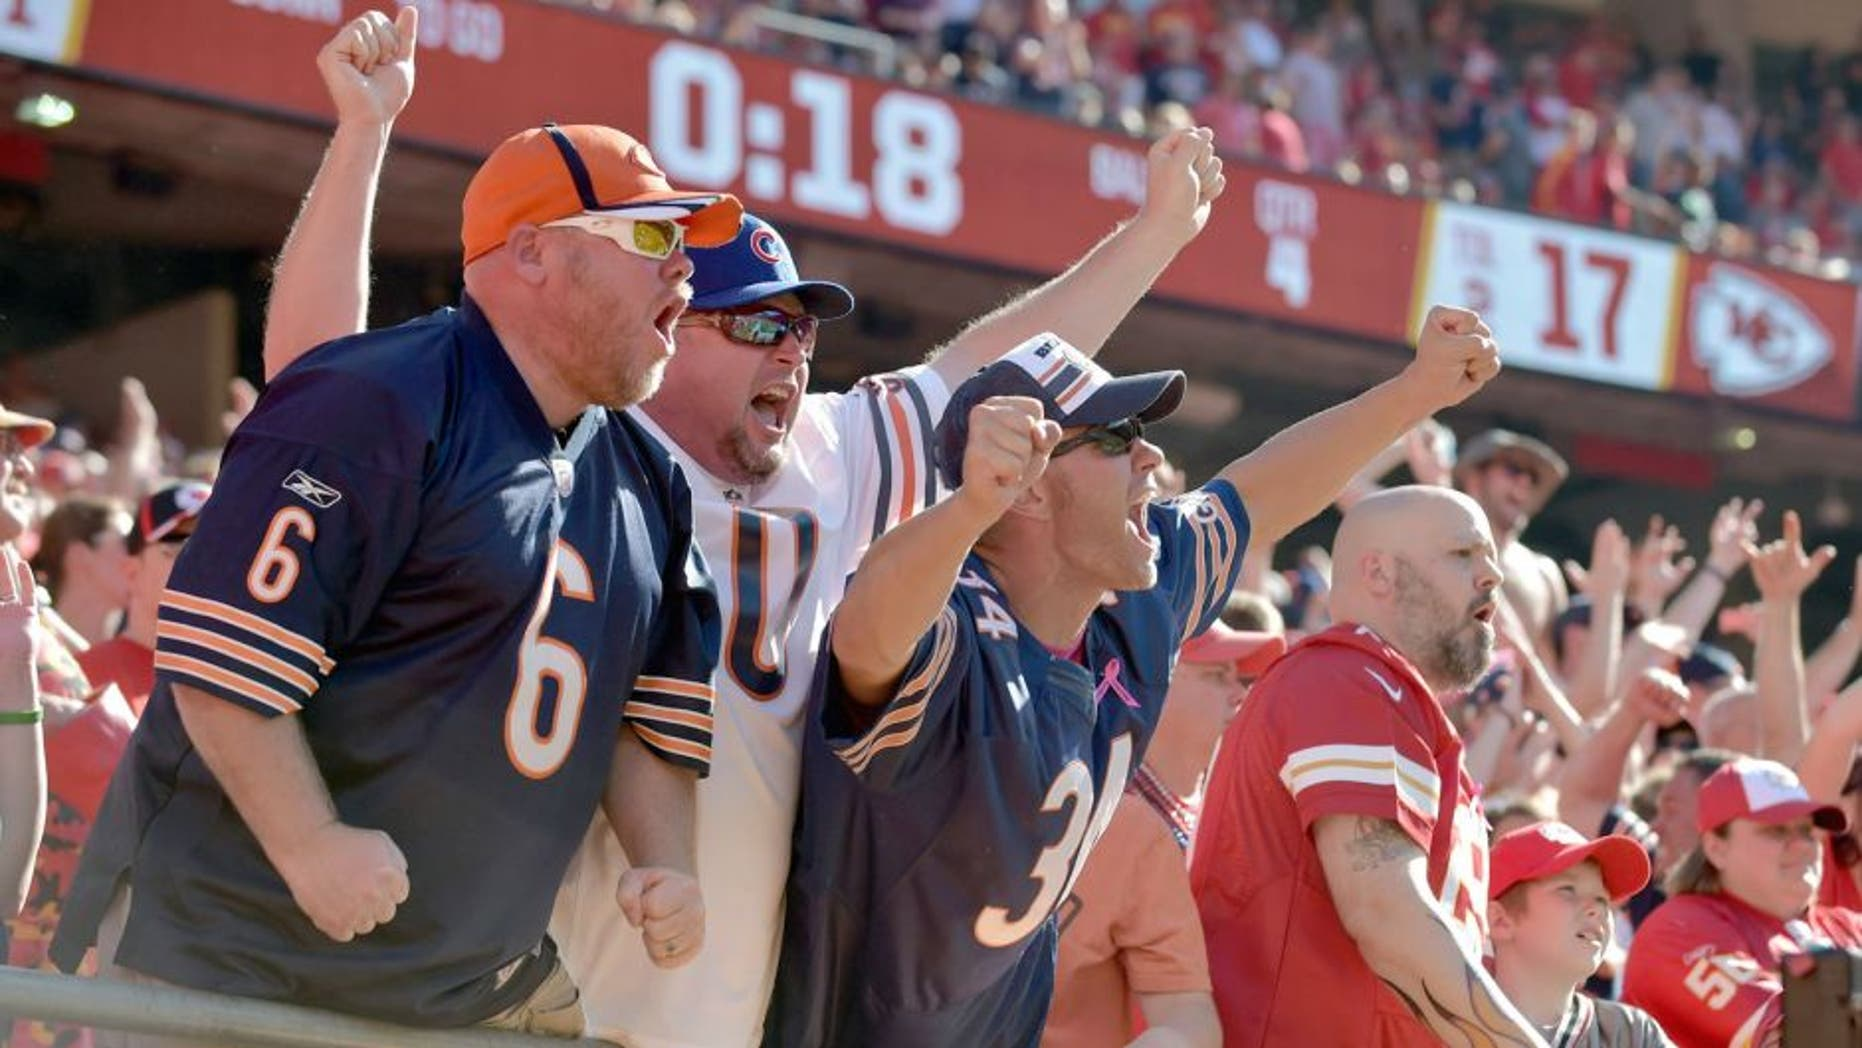 Oct 11, 2015; Kansas City, MO, USA; Chicago Bears react after the winning touchdown play against the Kansas City Chiefs during the second half at Arrowhead Stadium. The Bears won 18-17. Mandatory Credit: Denny Medley-USA TODAY Sports